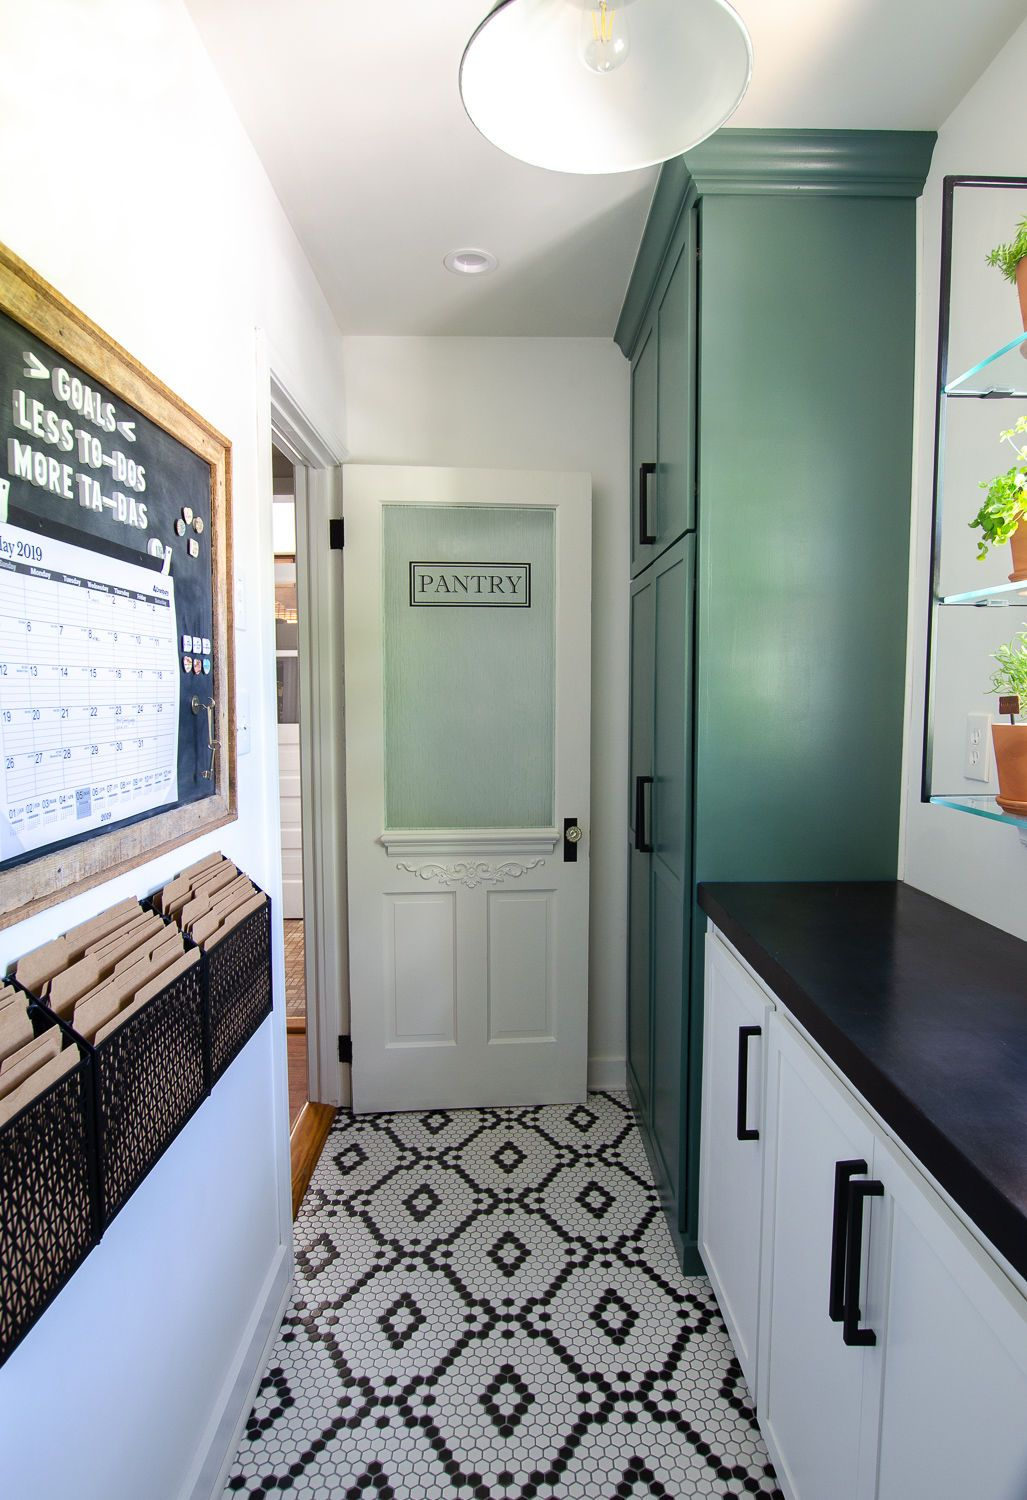 WalkIn Pantry Reveal - Pantry remodel, Pantry design, Walk in pantry, Pantry shelving, Kitchen renovation, Hexagon tile floor - So today, I'll walk you through our walk in pantry reveal! We've added tons of storage with shelving and cabinets to keep us organized